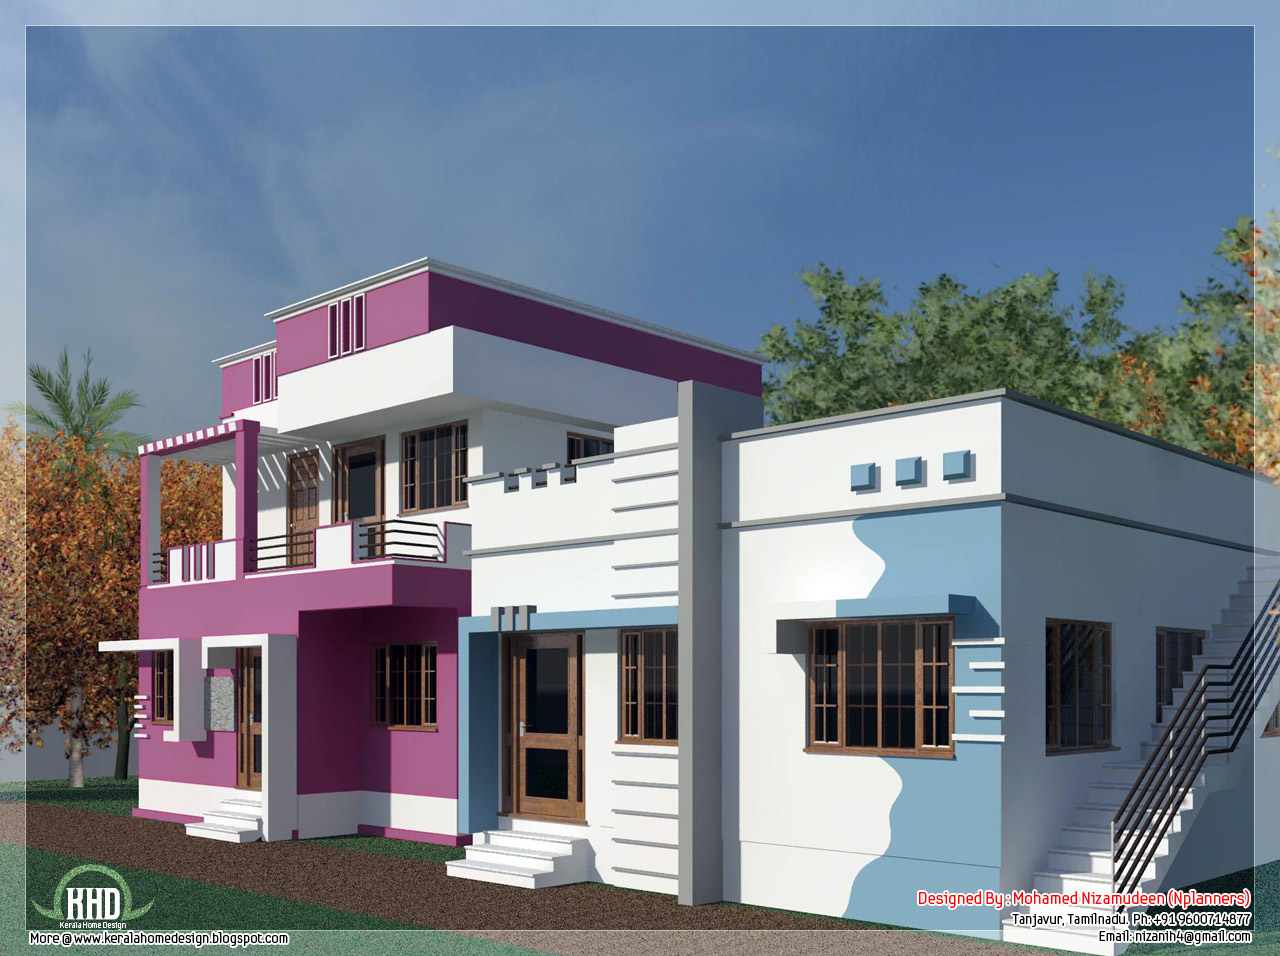 Tamilnadu model home design in 3000 kerala home for Model home plans